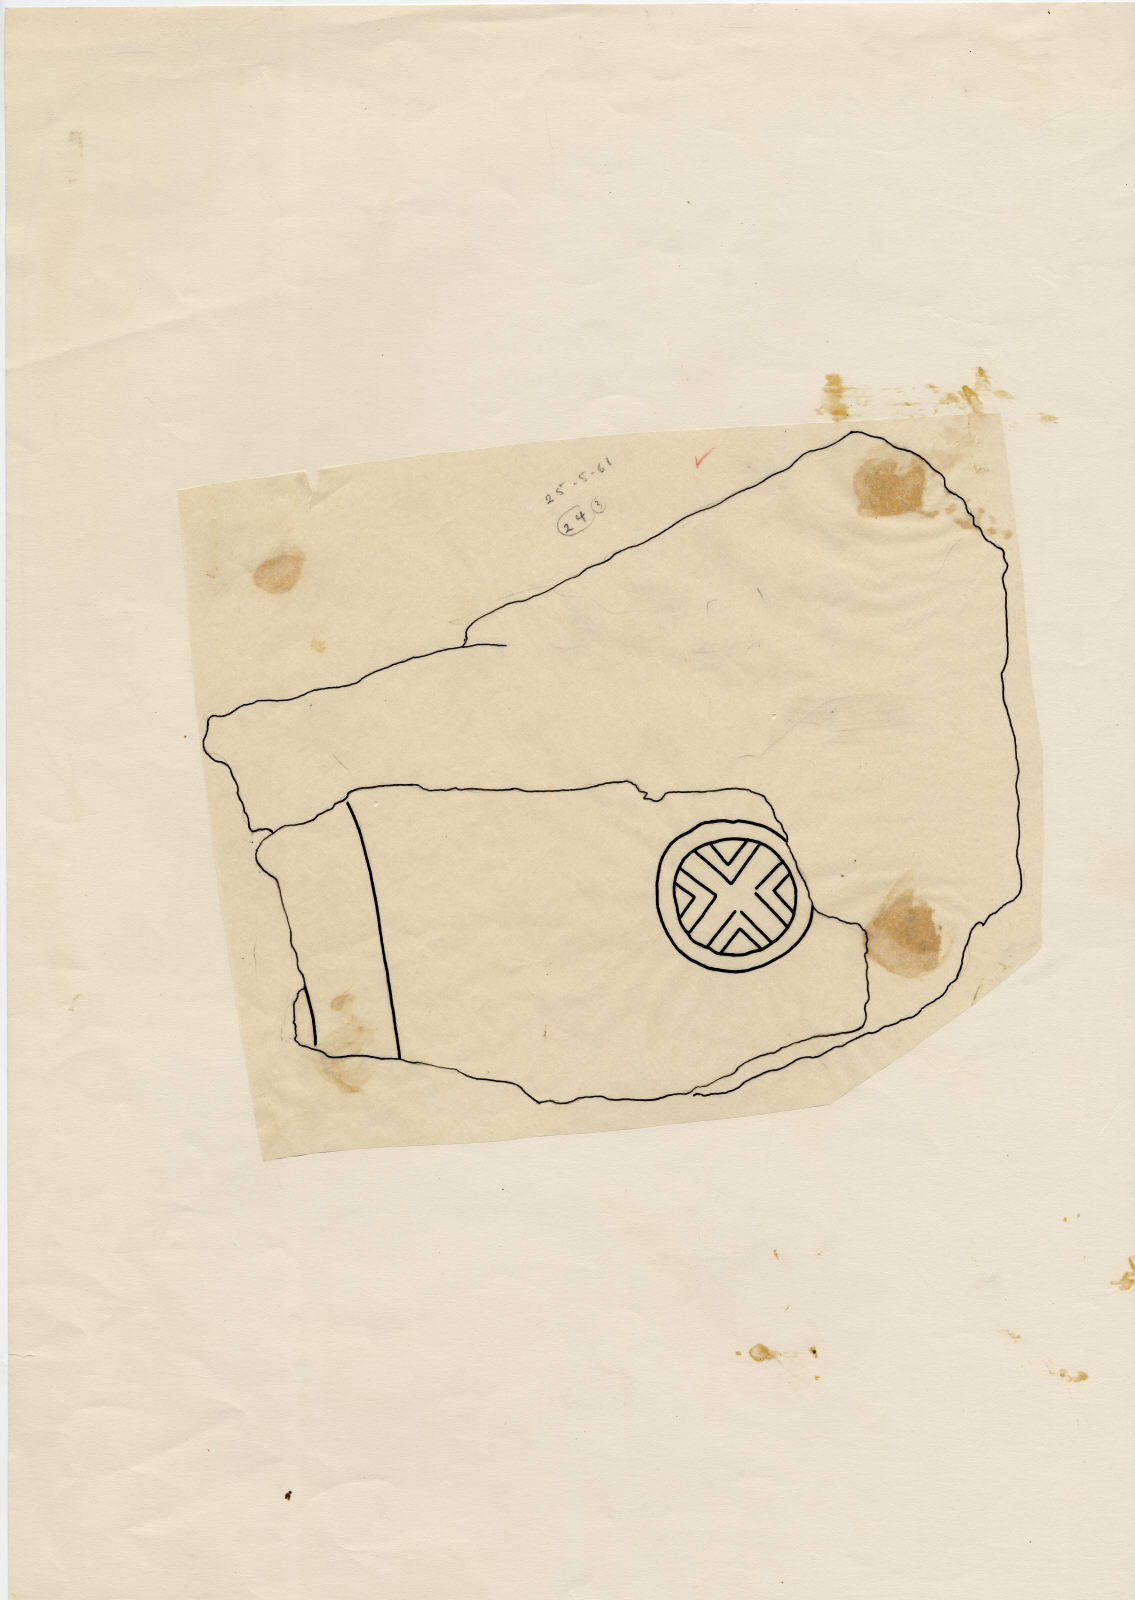 Drawings: G 7510: fragments of relief